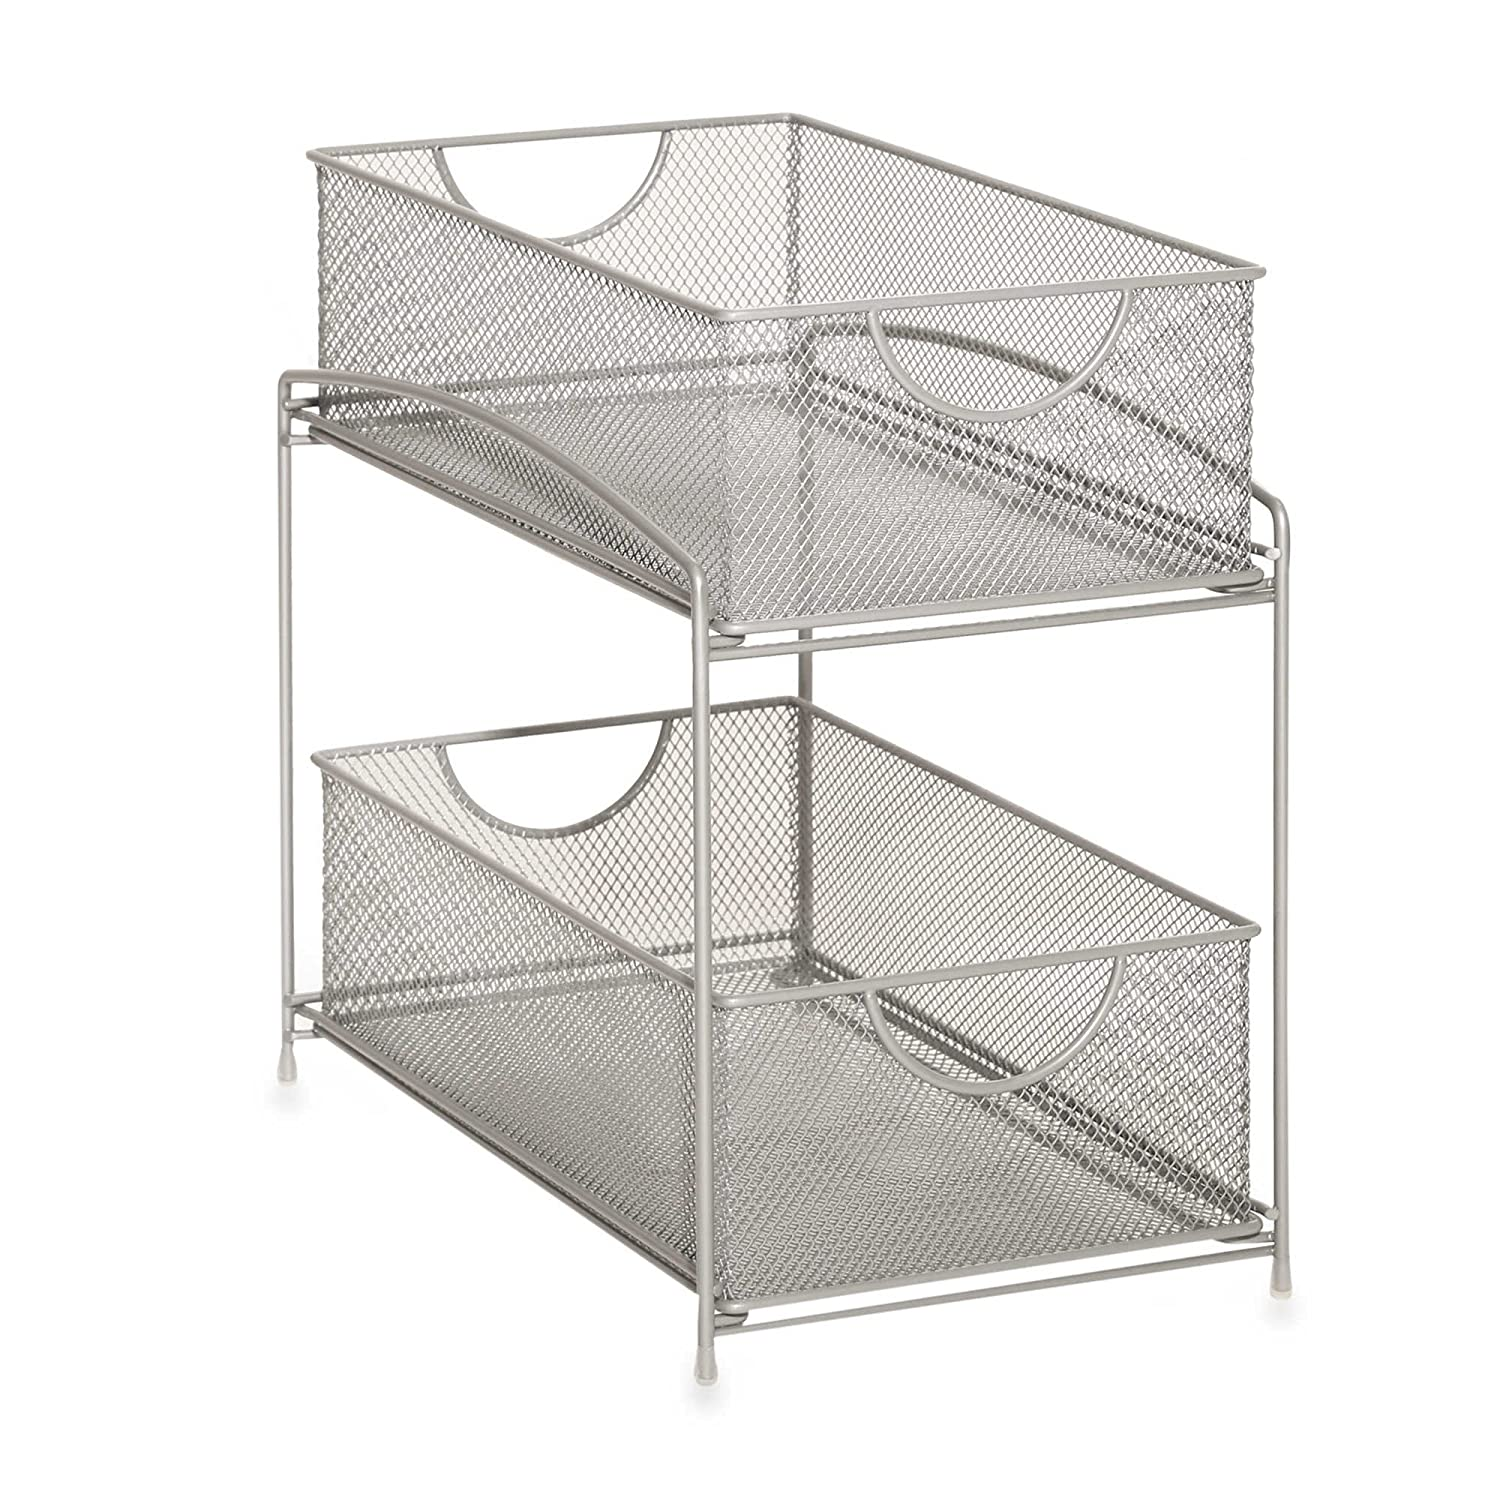 Amazon.com: .ORG 2-Tier Mesh Double Sliding Cabinet Basket in ...